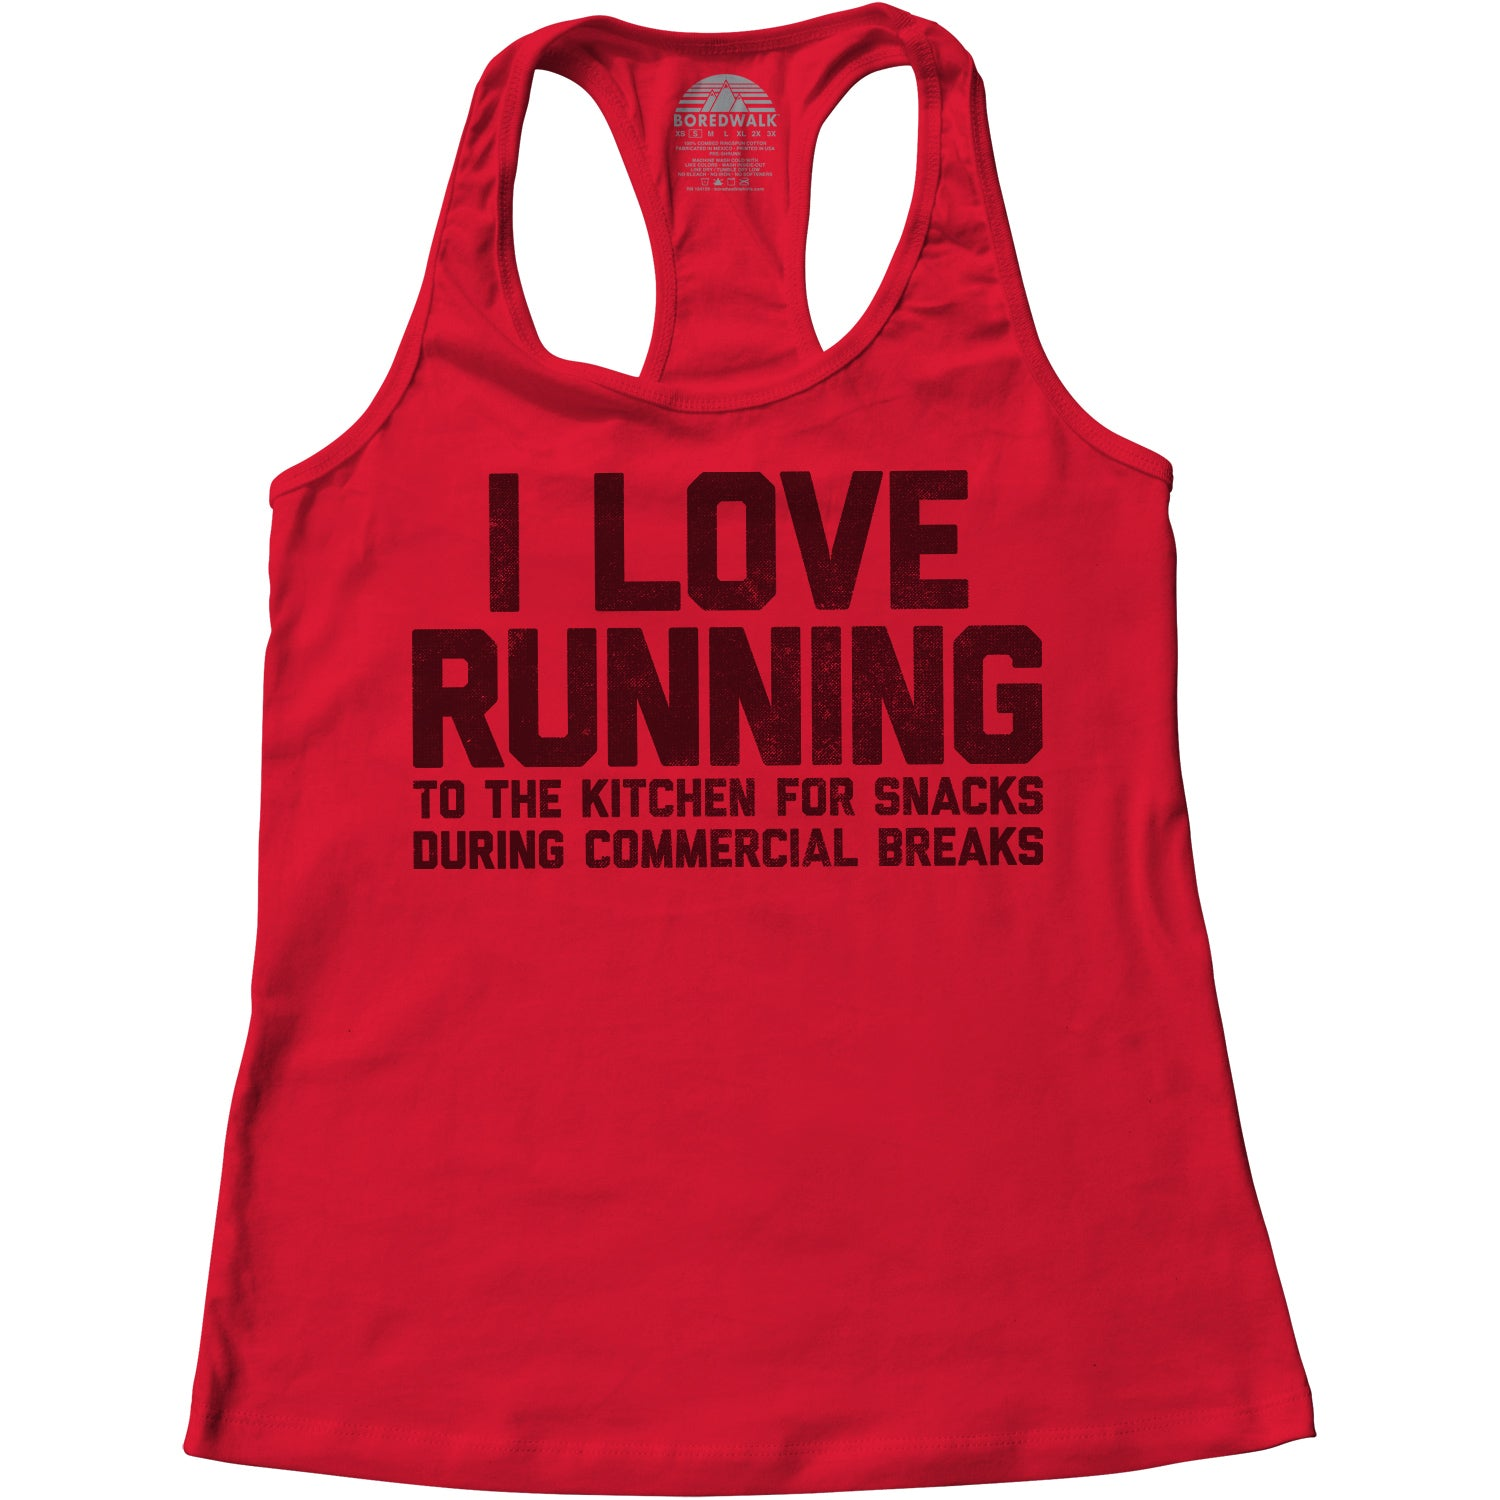 Women's I Love Running to the Kitchen for Snacks Racerback Tank Top